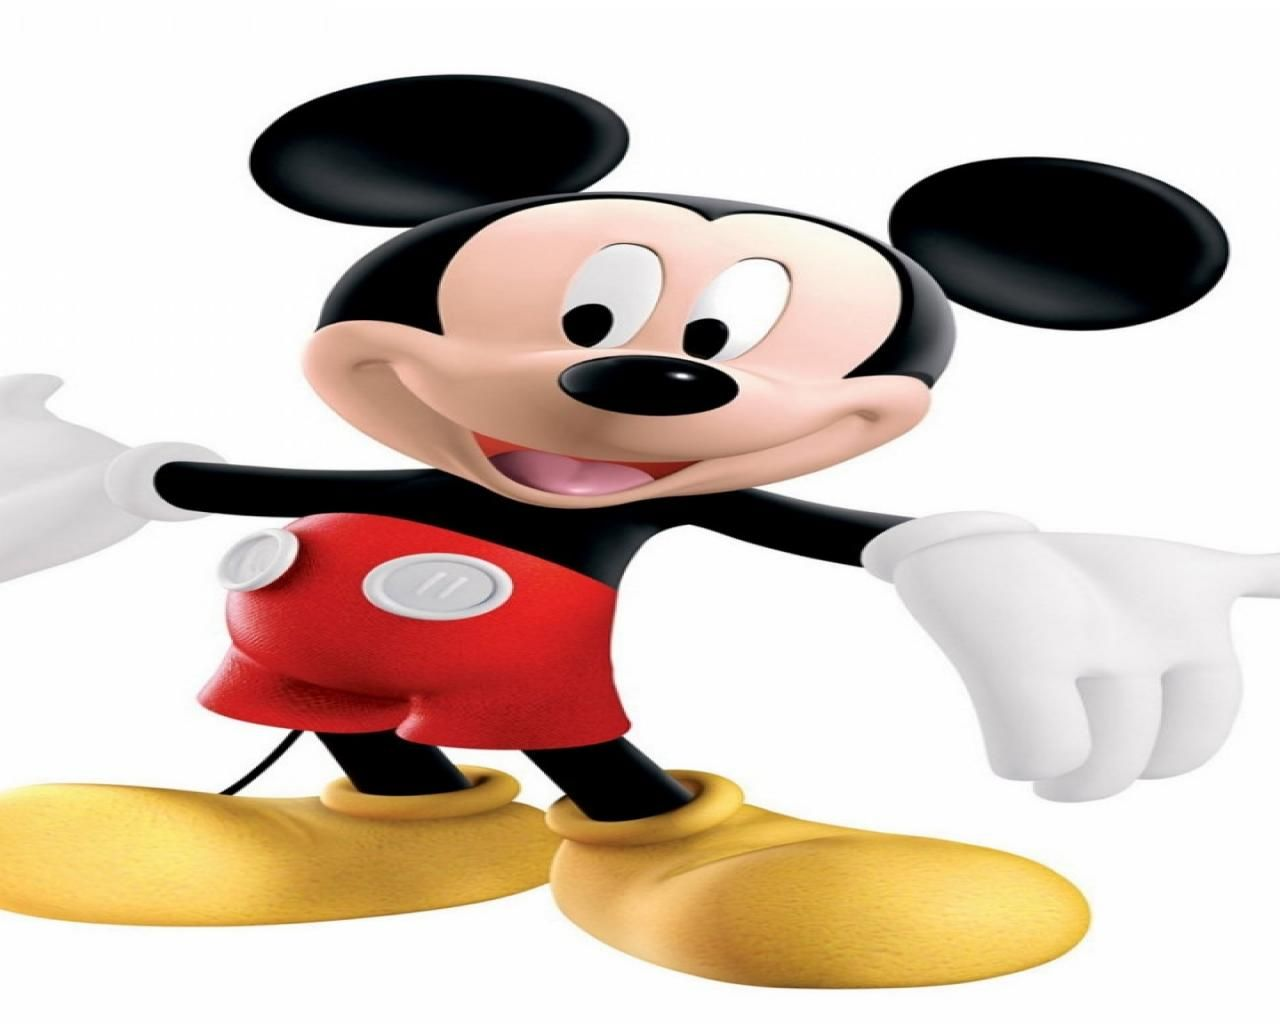 Mickey Mouse Wallpapers Free Download Mobile - Cute Mickey Mouse Wallpaper  For Mobile (#2007530) - HD Wallpaper & Backgrounds Download